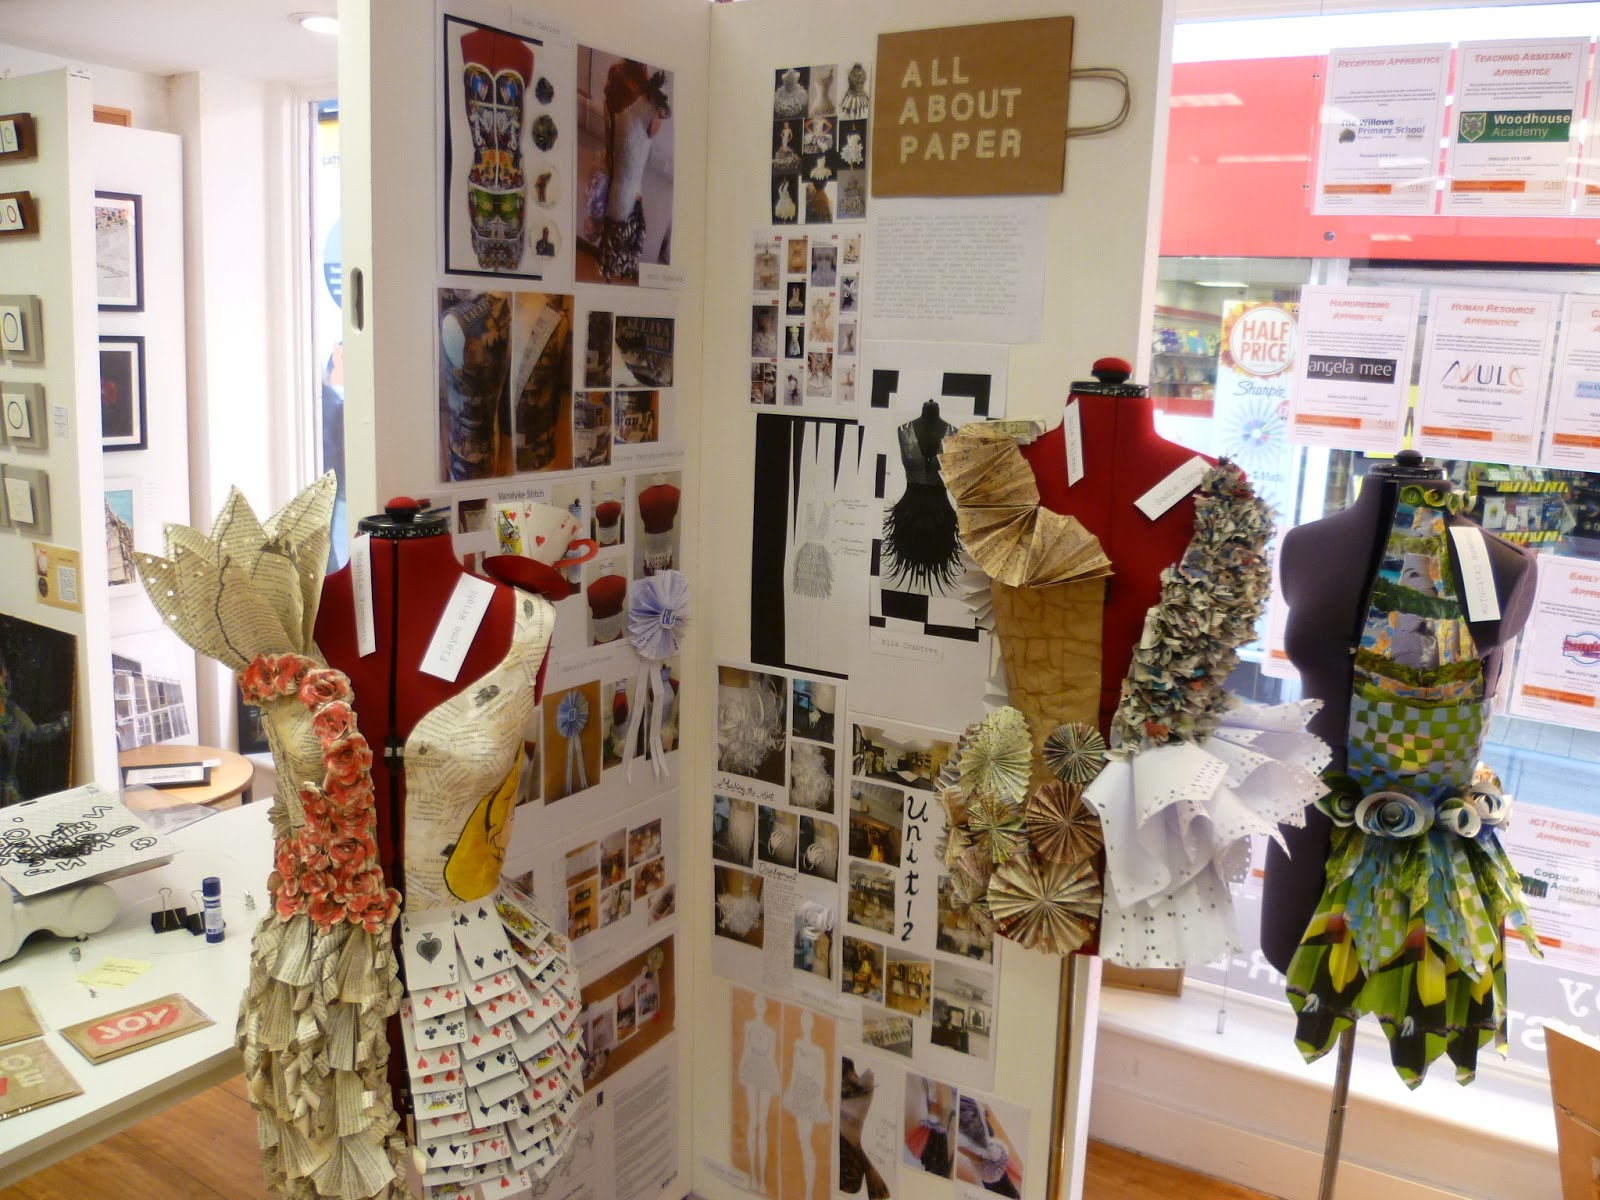 An Exhibition Of The Students Work Is On Display At MADE Here Shop In Newcastle Under Lyme Town Centre Please Pop And Take A Look